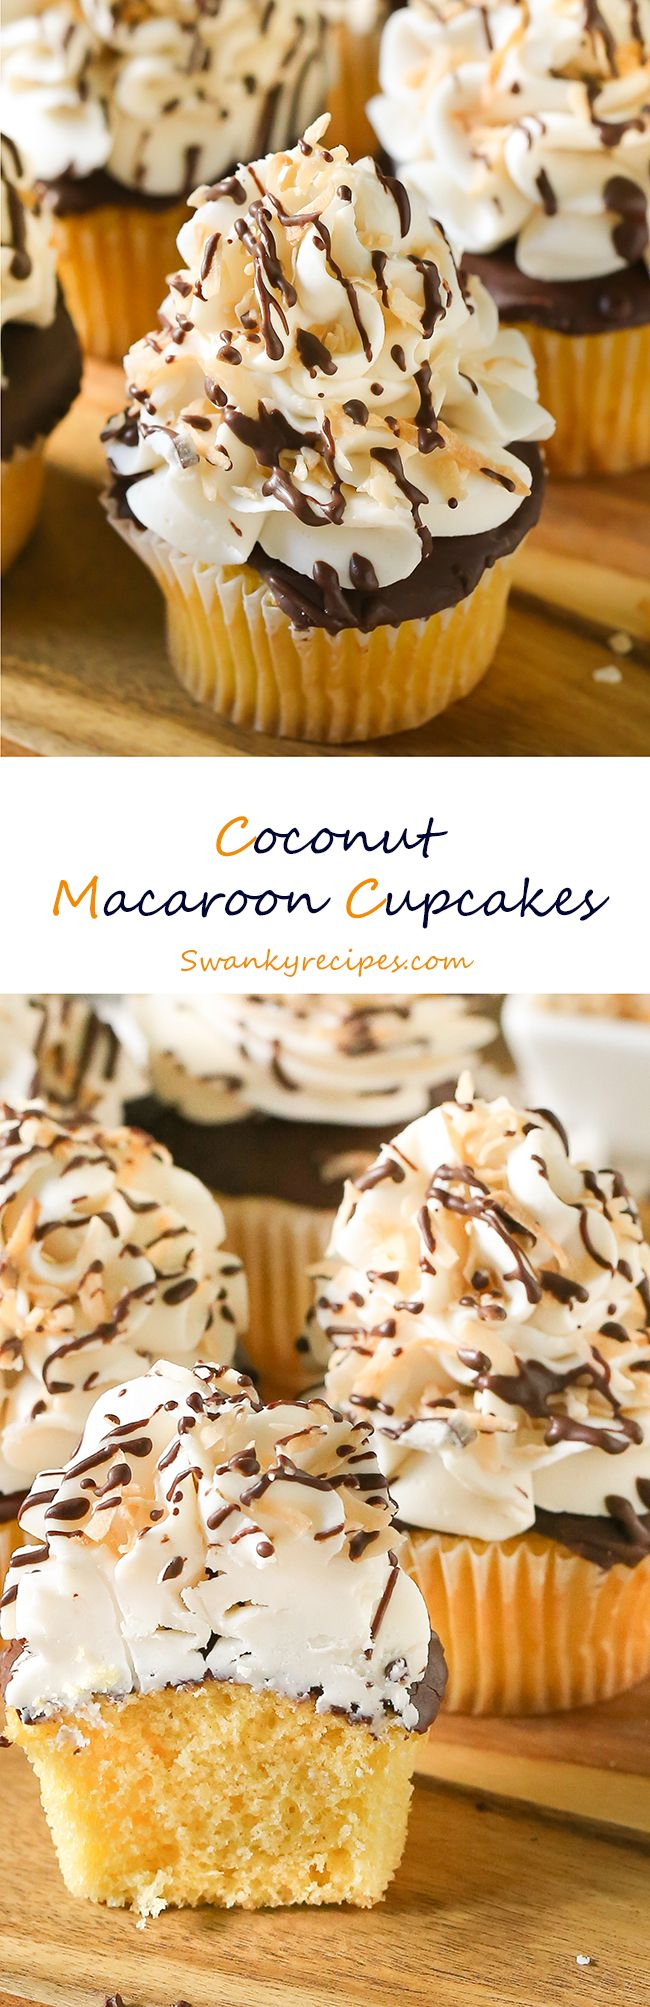 Coconut Macaroon cupcakes - Celebrate the arrival of spring holidays with moist and flavorful cupcakes made with @SPLENDA Naturals Stevia Sweetener, dark chocolate, toasted coconut flakes and whipped (Baking Desserts Spring)